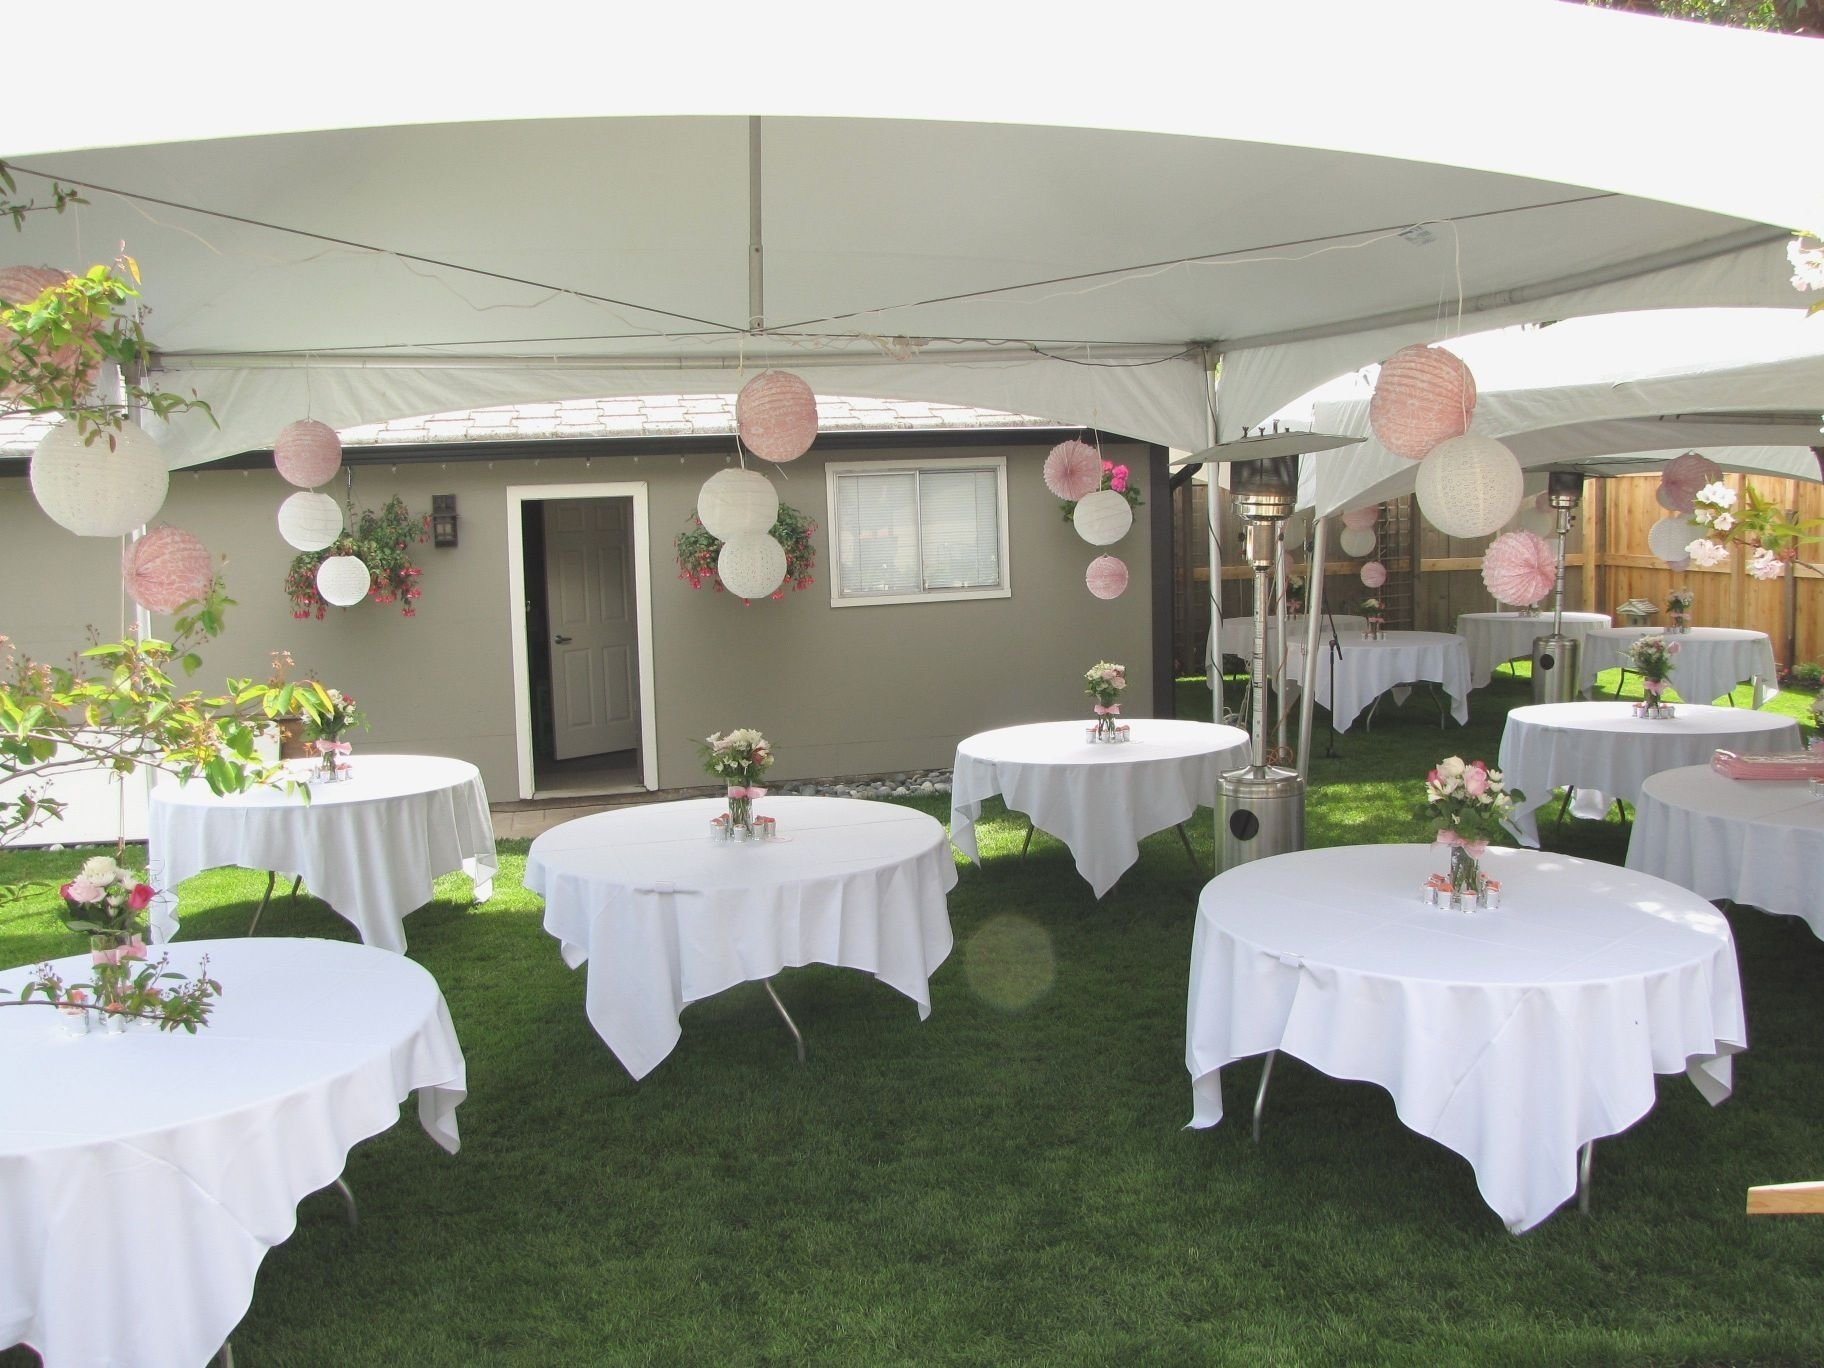 10 Cute Backyard Wedding Decoration Ideas On A Budget the best backyard wedding decoration ideas on a budget of concept 1 2021